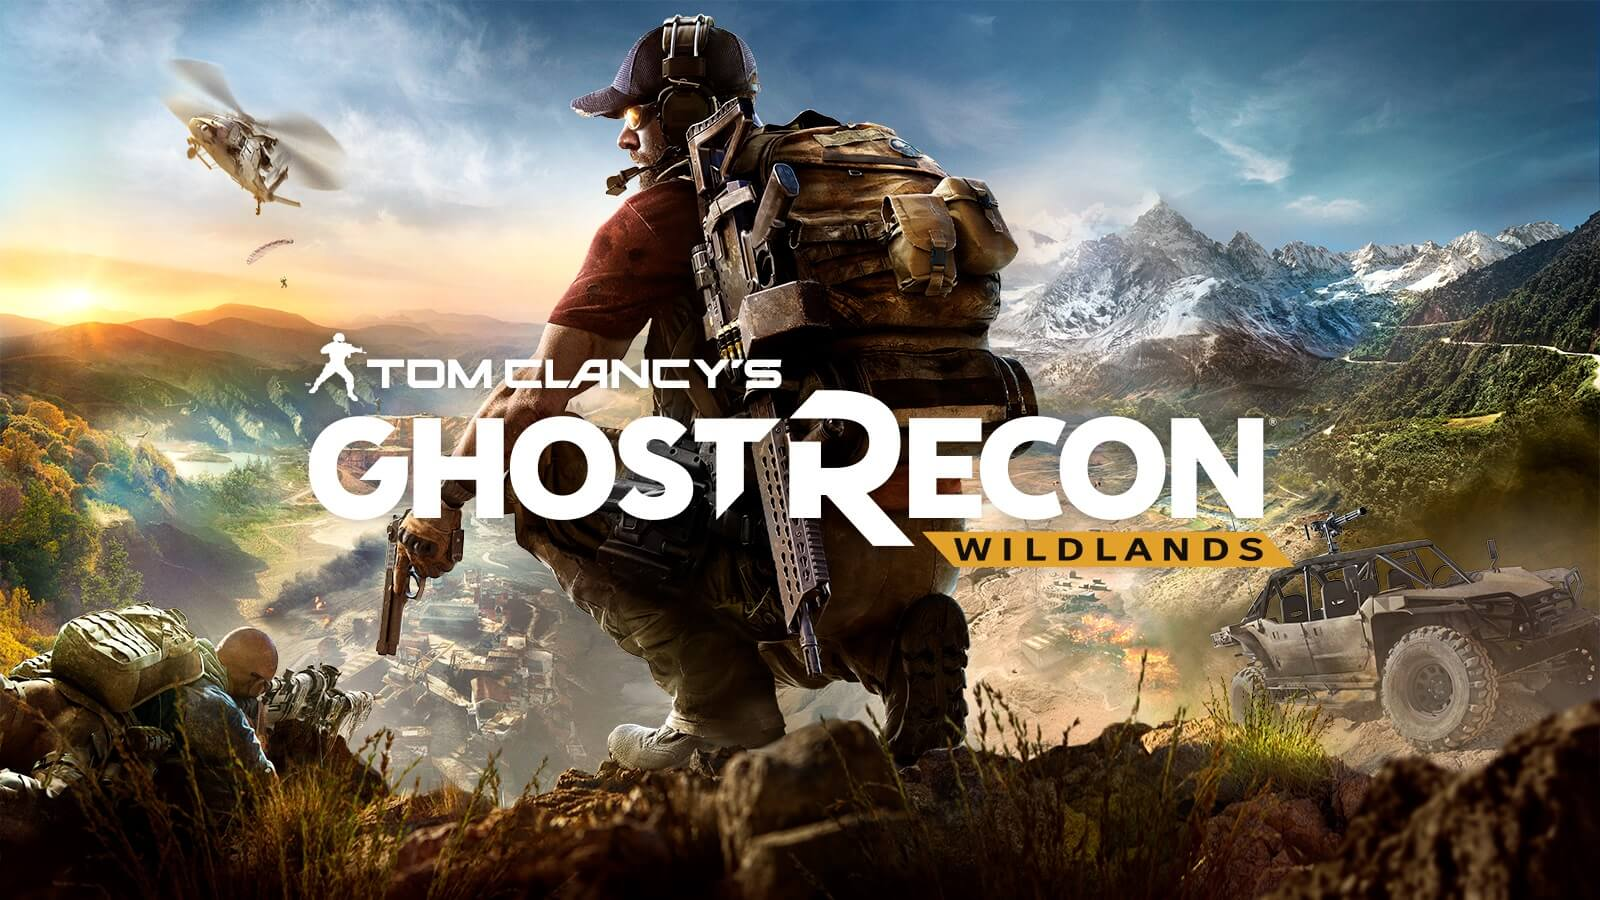 GOLDEN GAMES: DOWNLOAD THE GAME TOM CLANCYS GHOST RECON ...